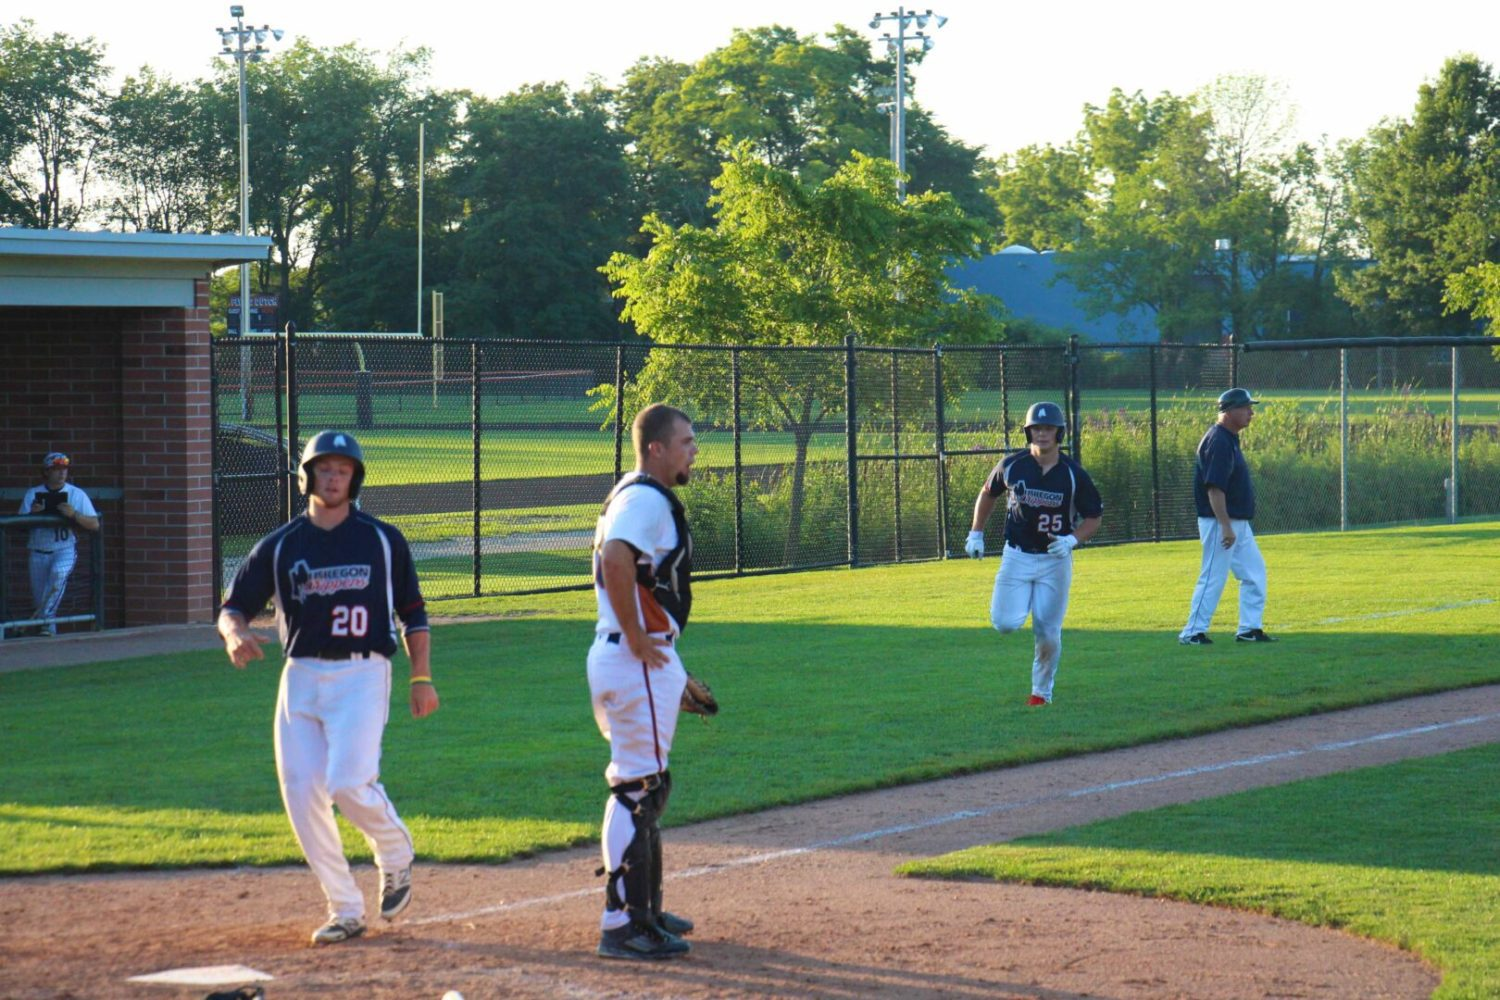 Even with championship wrapped up, Clippers keep pounding the ball in a 15-3 victory over Holland